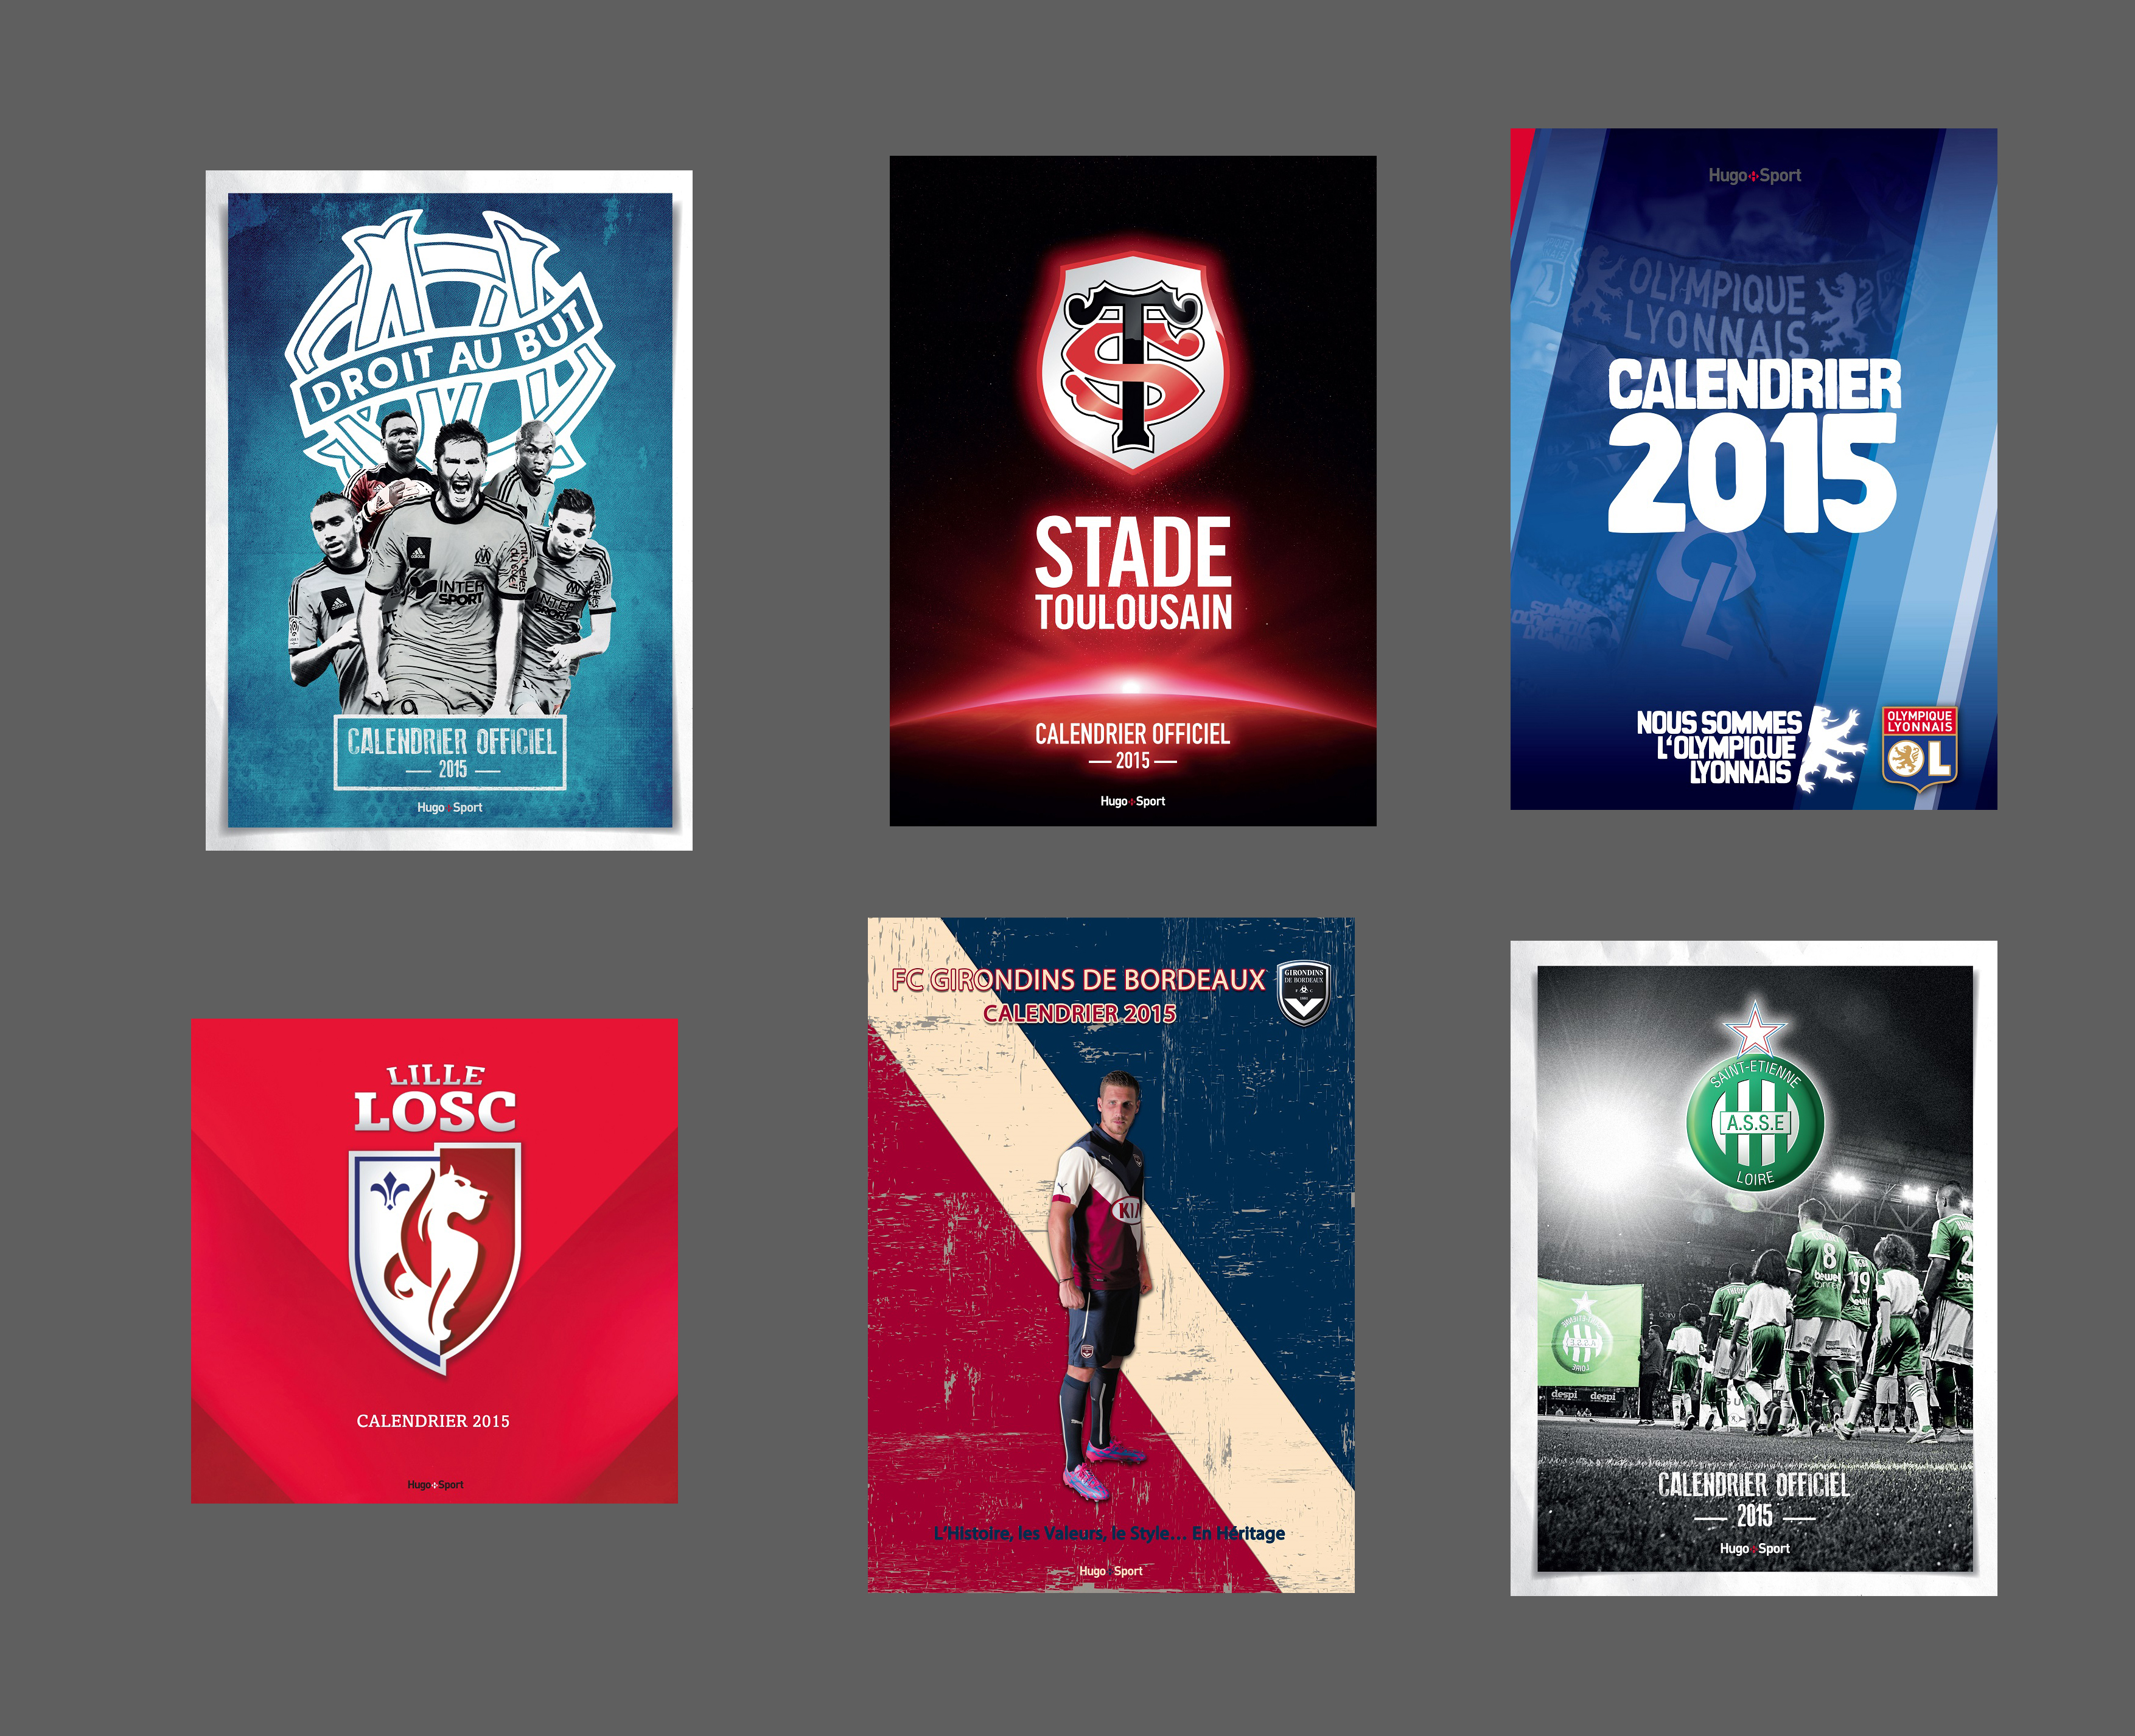 Concours sbb om asse ol losc fcgb stade toulousain for Calendrier mural 2015